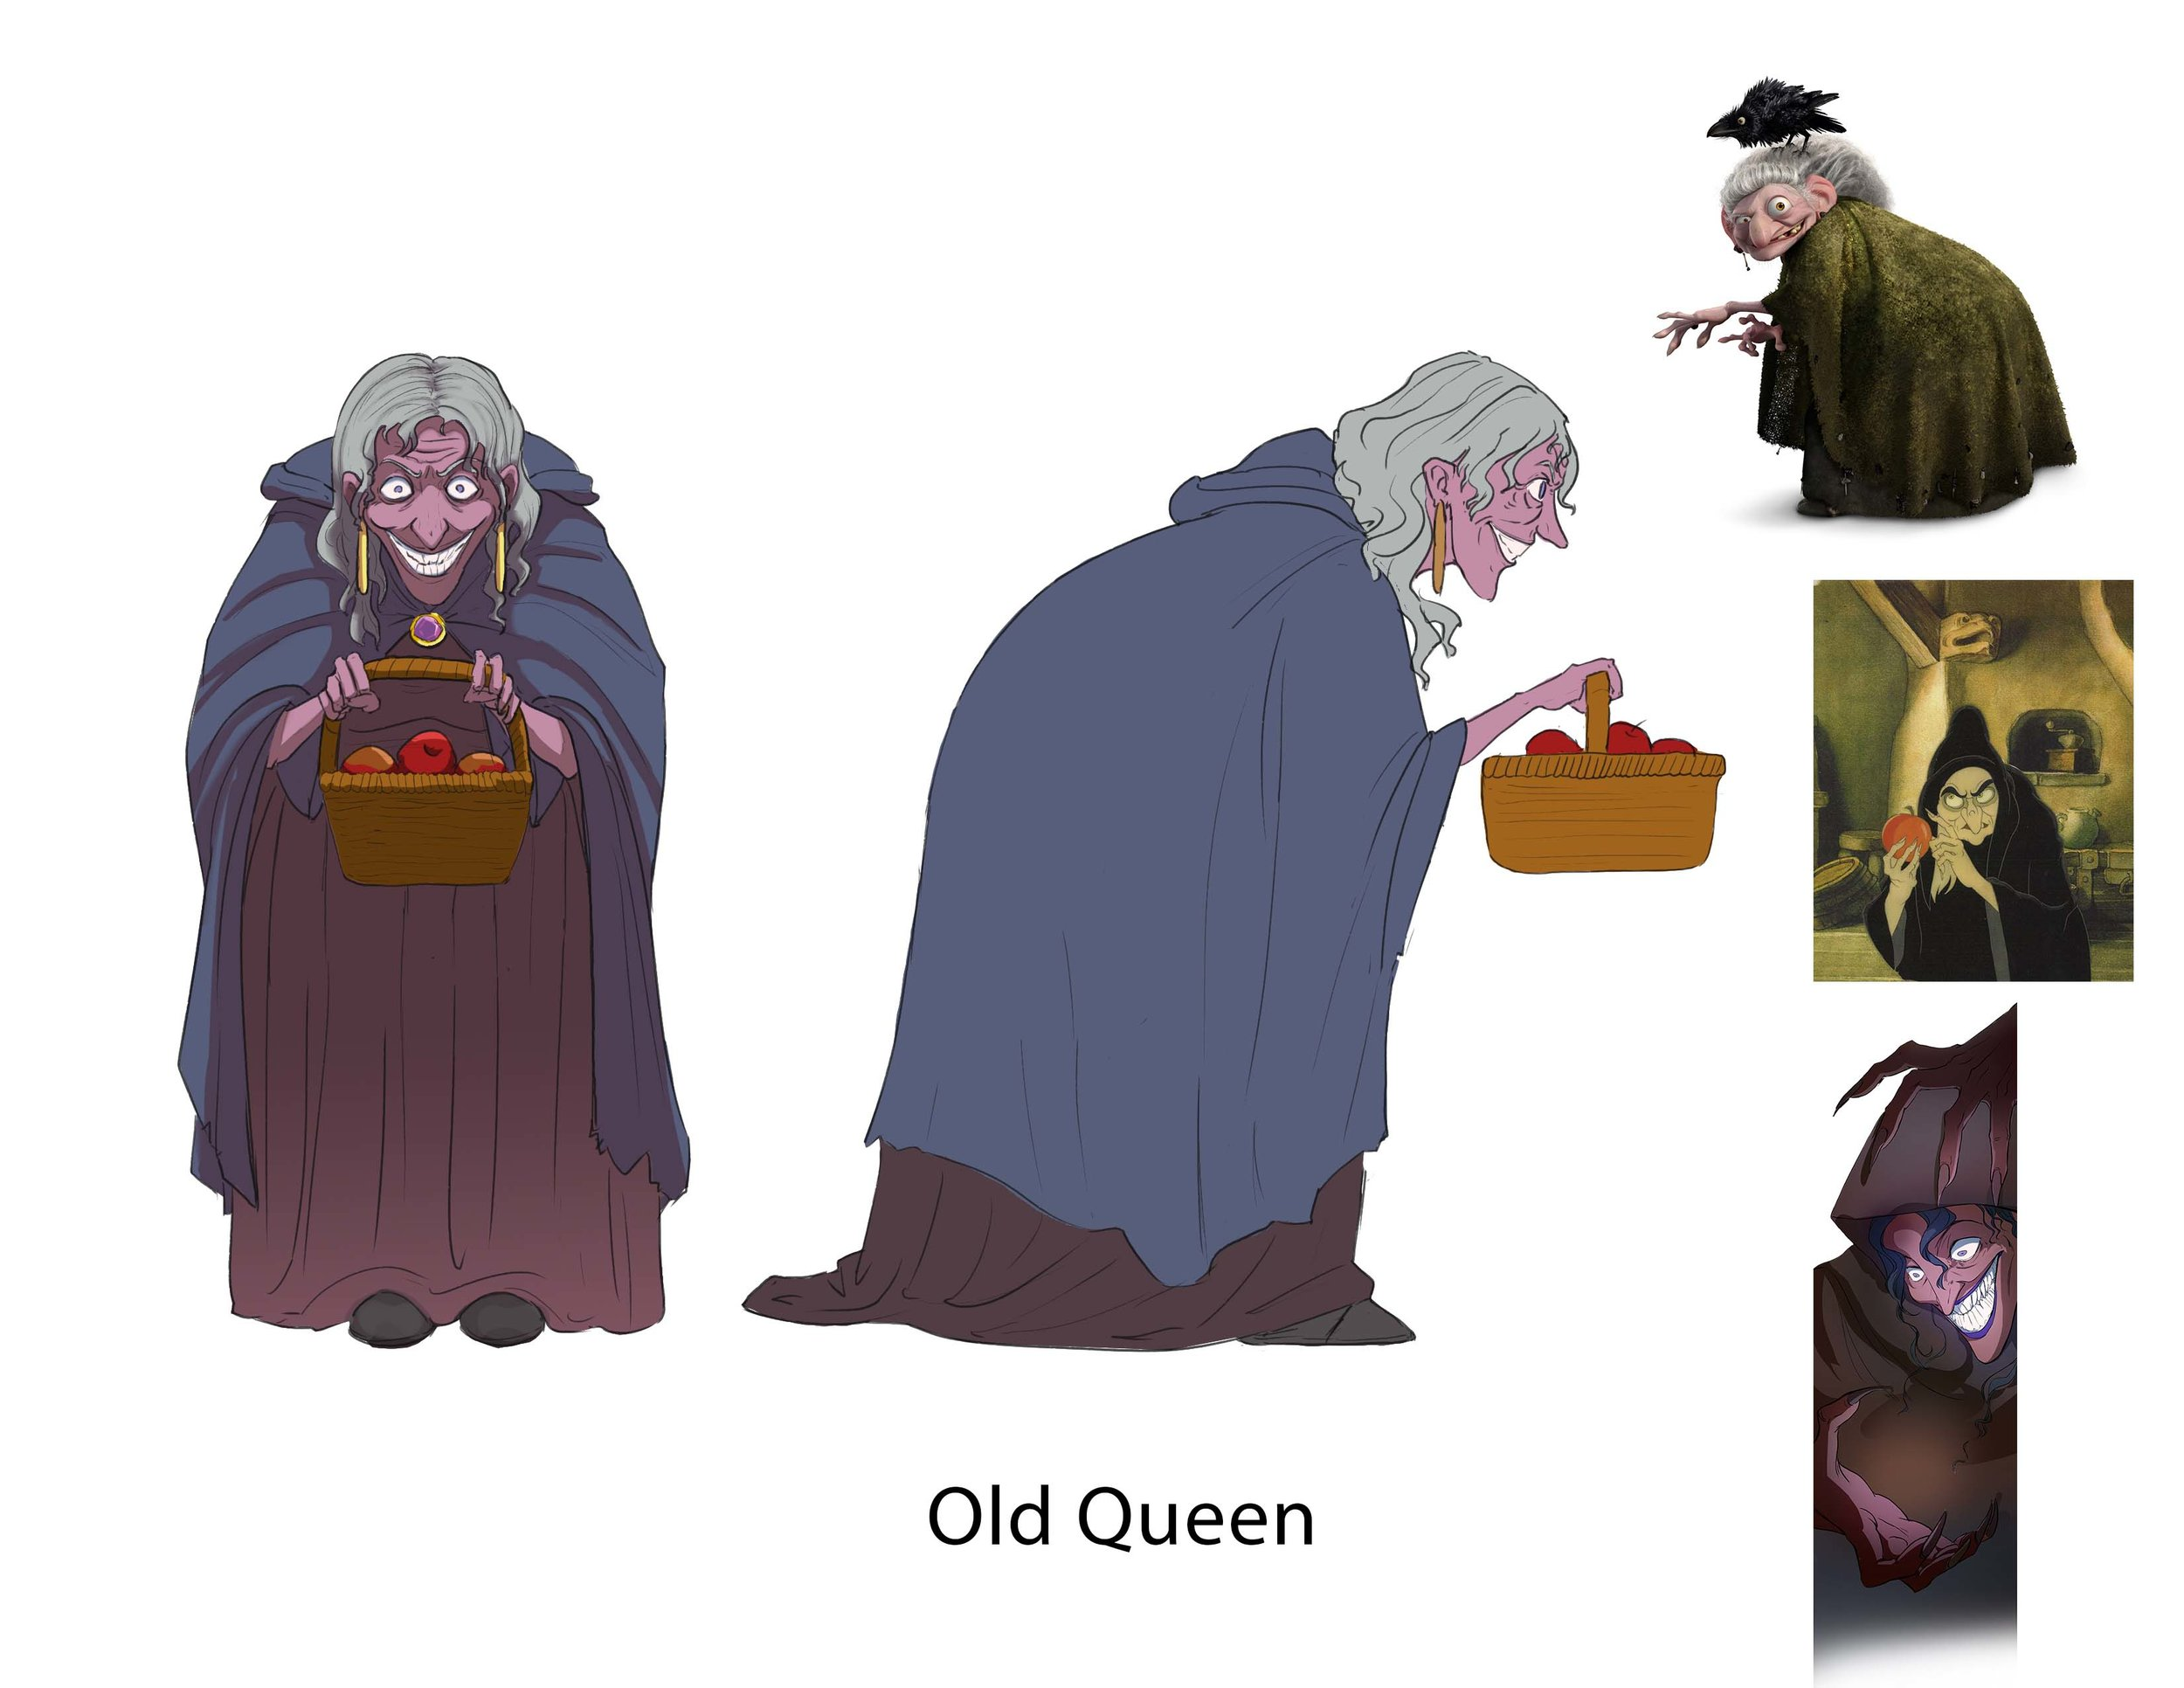 Project: Snow White, old queen